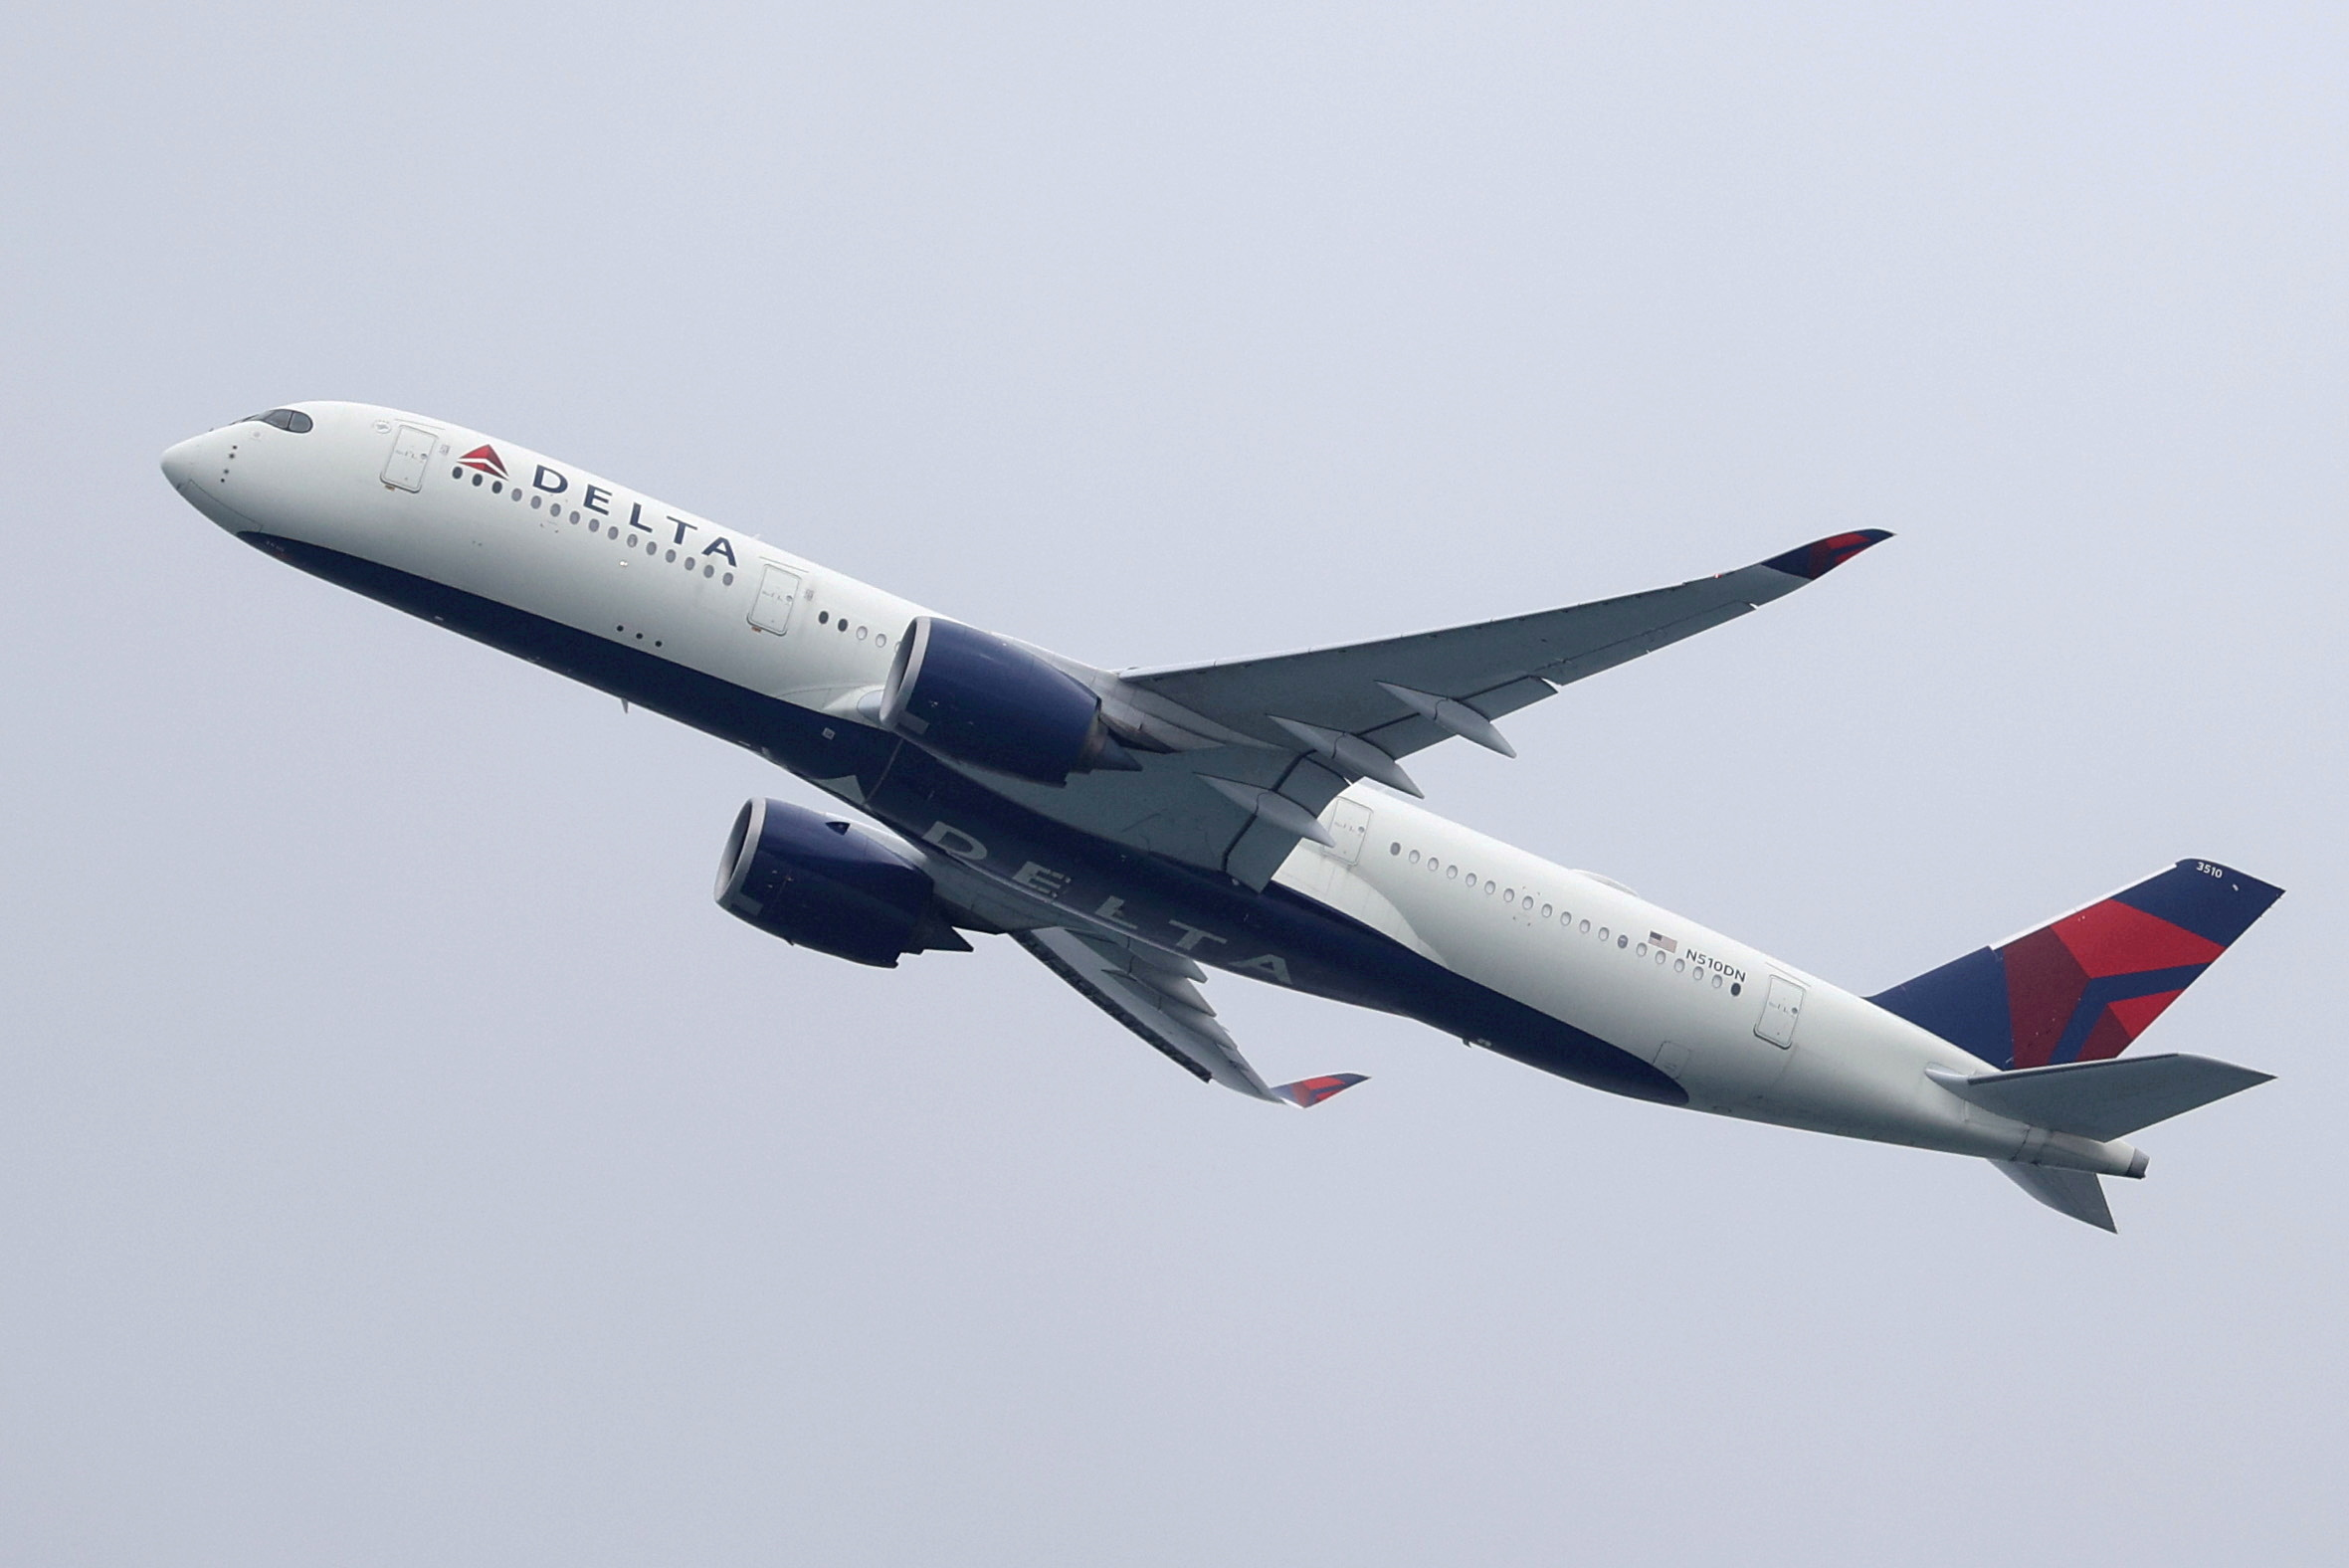 A Delta Air Lines Airbus A350-900 plane takes off from Sydney Airport in Sydney, Australia, October 28, 2020.  REUTERS/Loren Elliott/File Photo